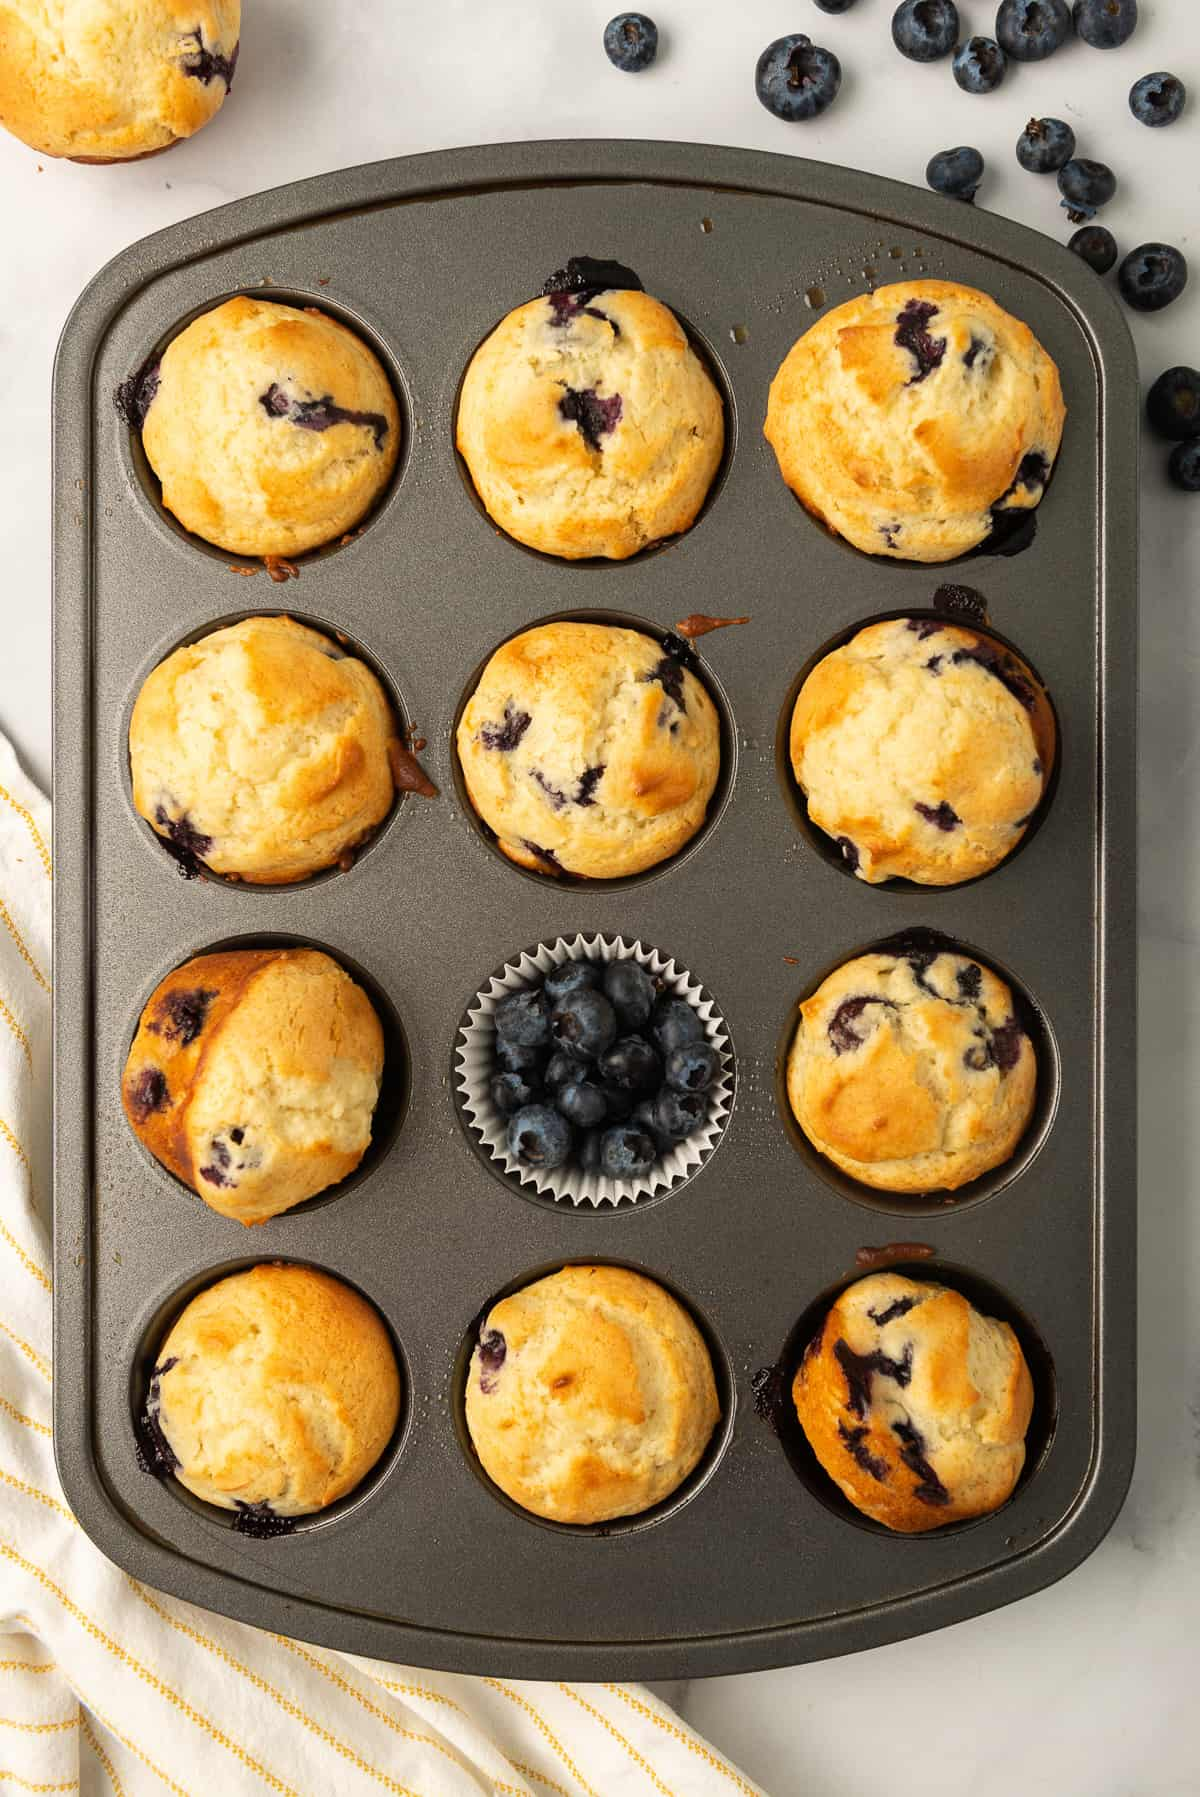 A muffin tray filled with blueberry bread and fresh berries.